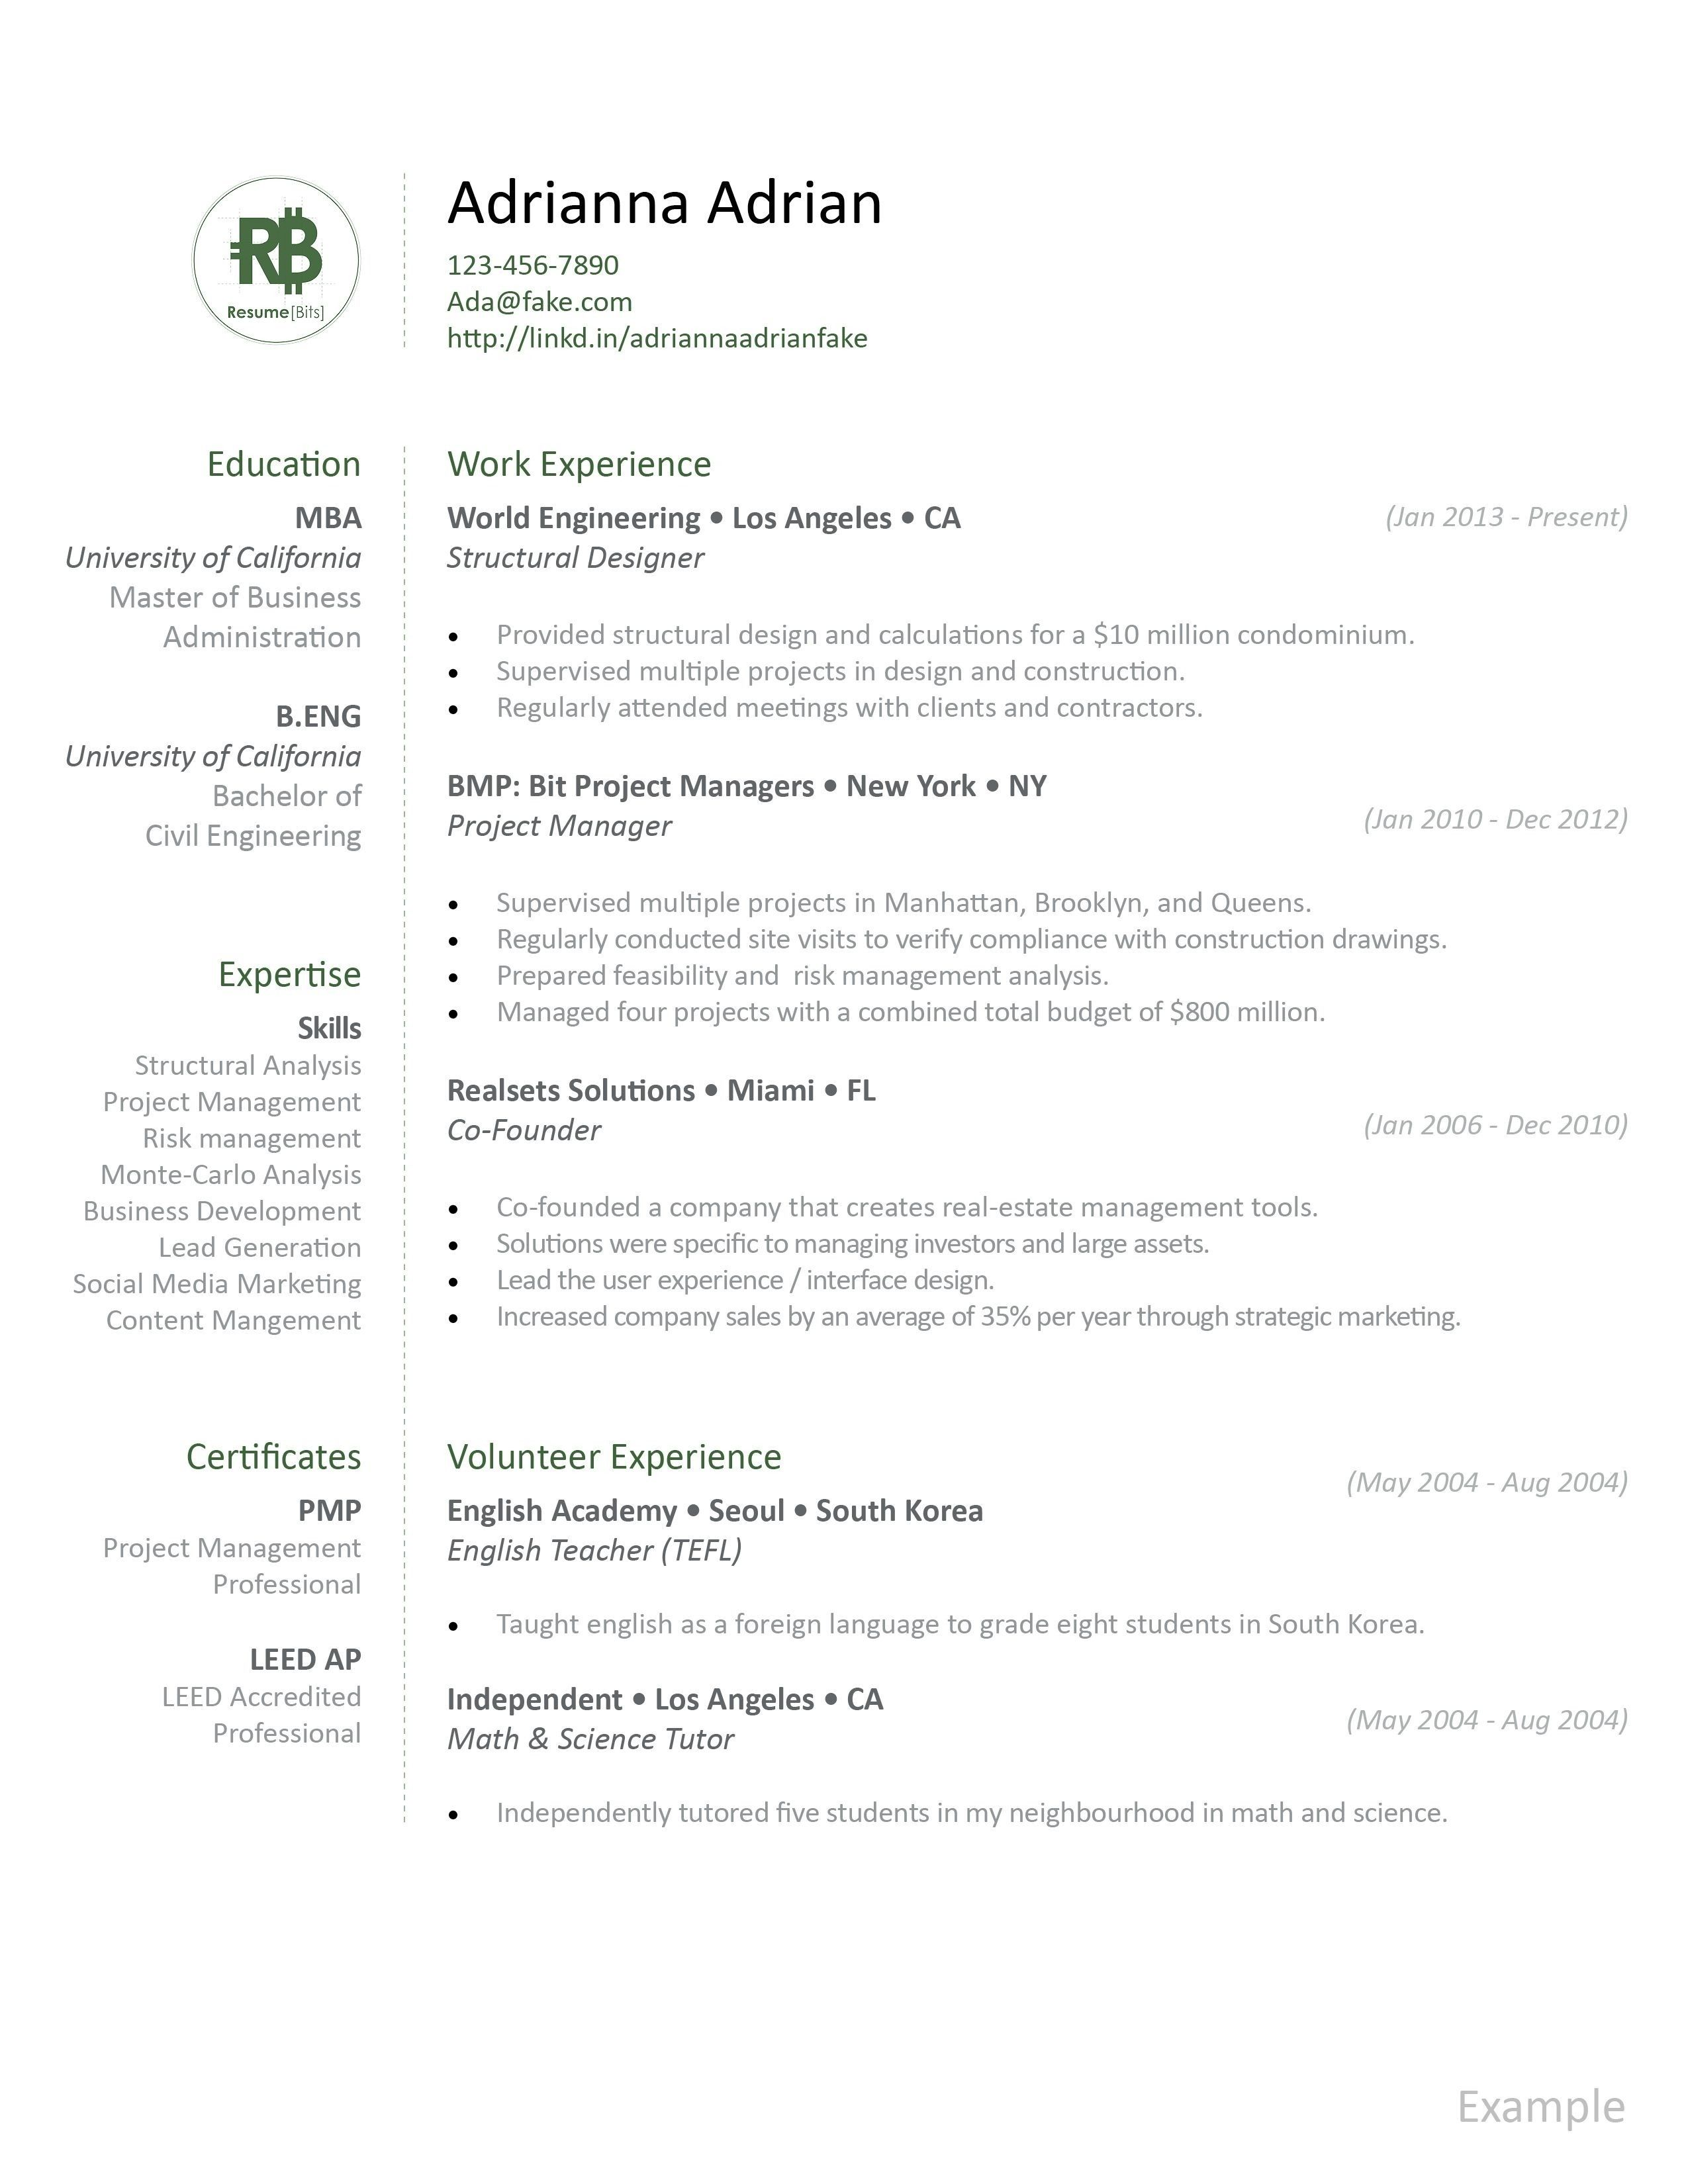 Resume Templates 2017 Reddit Resumetemplates Resume Templates Indesign Resume Template Cv Template